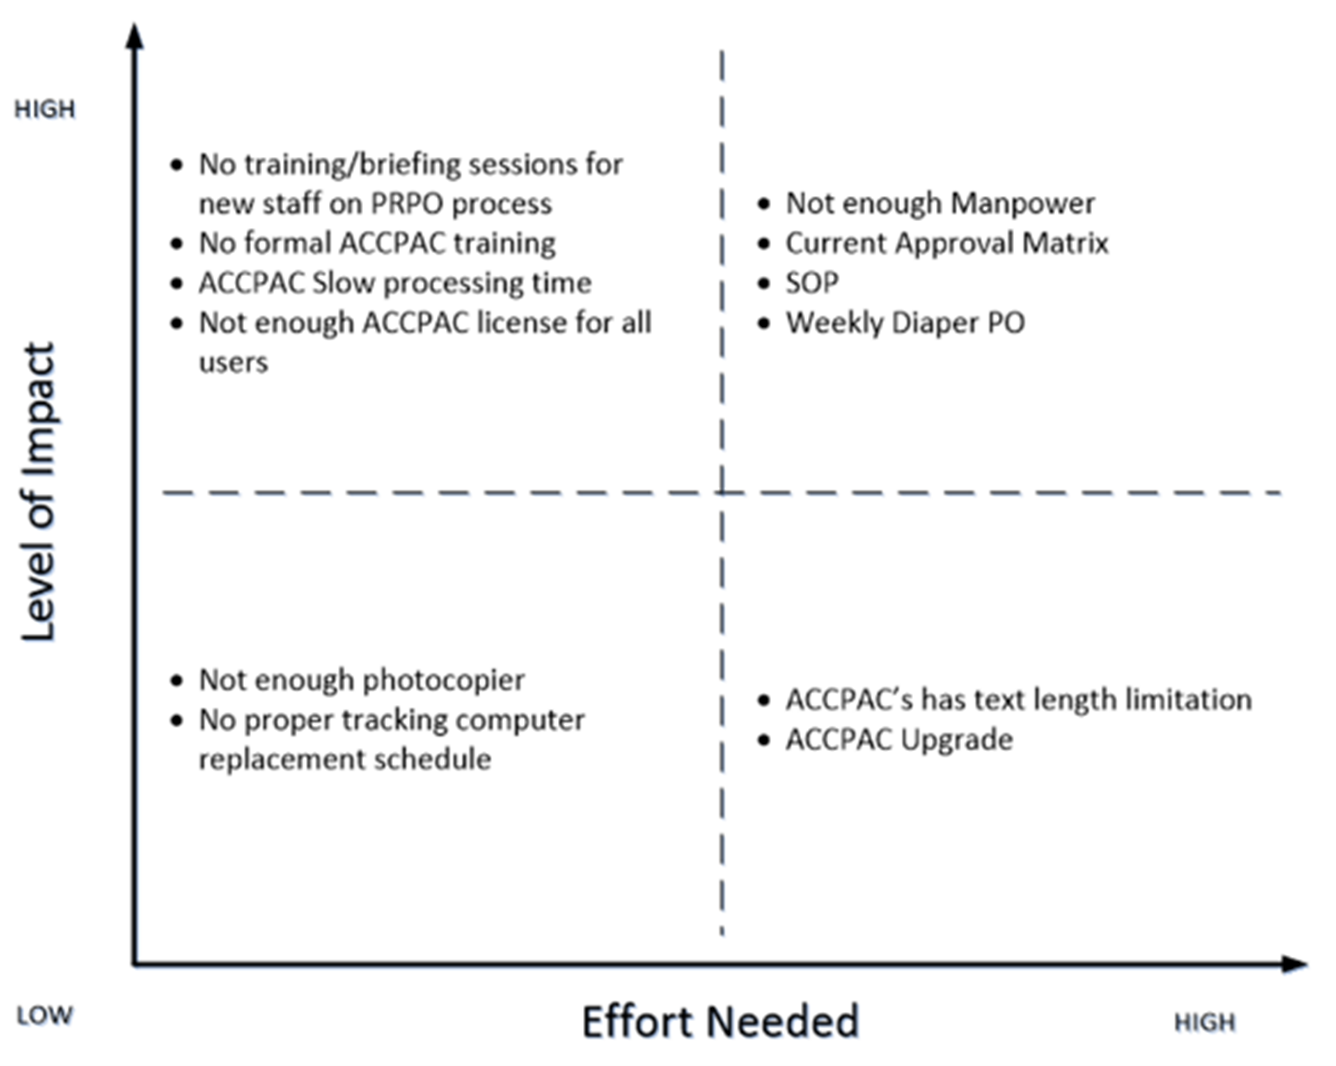 Implementation strategy that matches effort to impact, based on Eisenhower Model